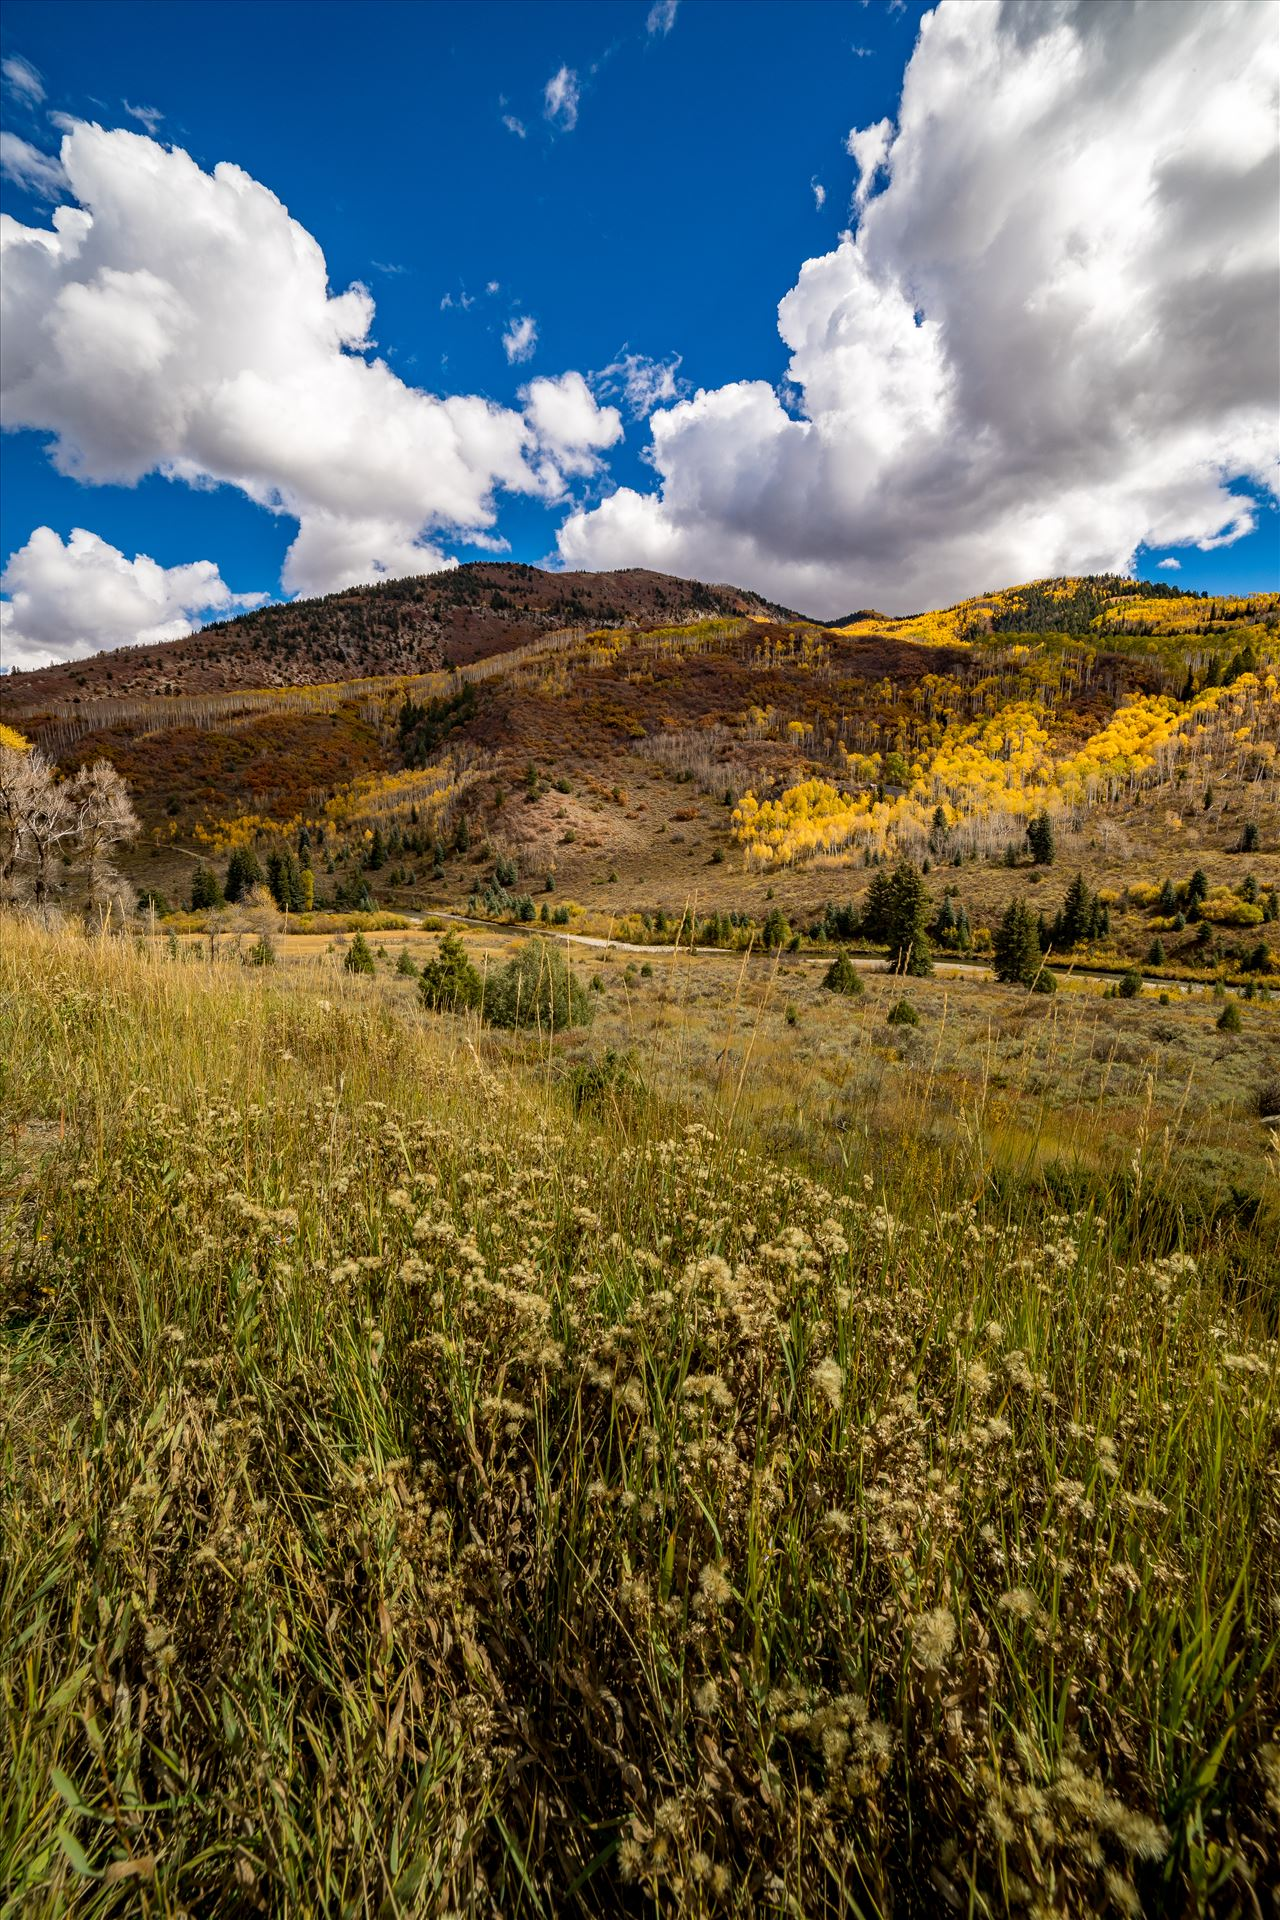 Fall in Aspen Snowmass Wilderness Area No 2 Summer grasses give way to fall colors between Redstone and Marble, Colorado. by Scott Smith Photos